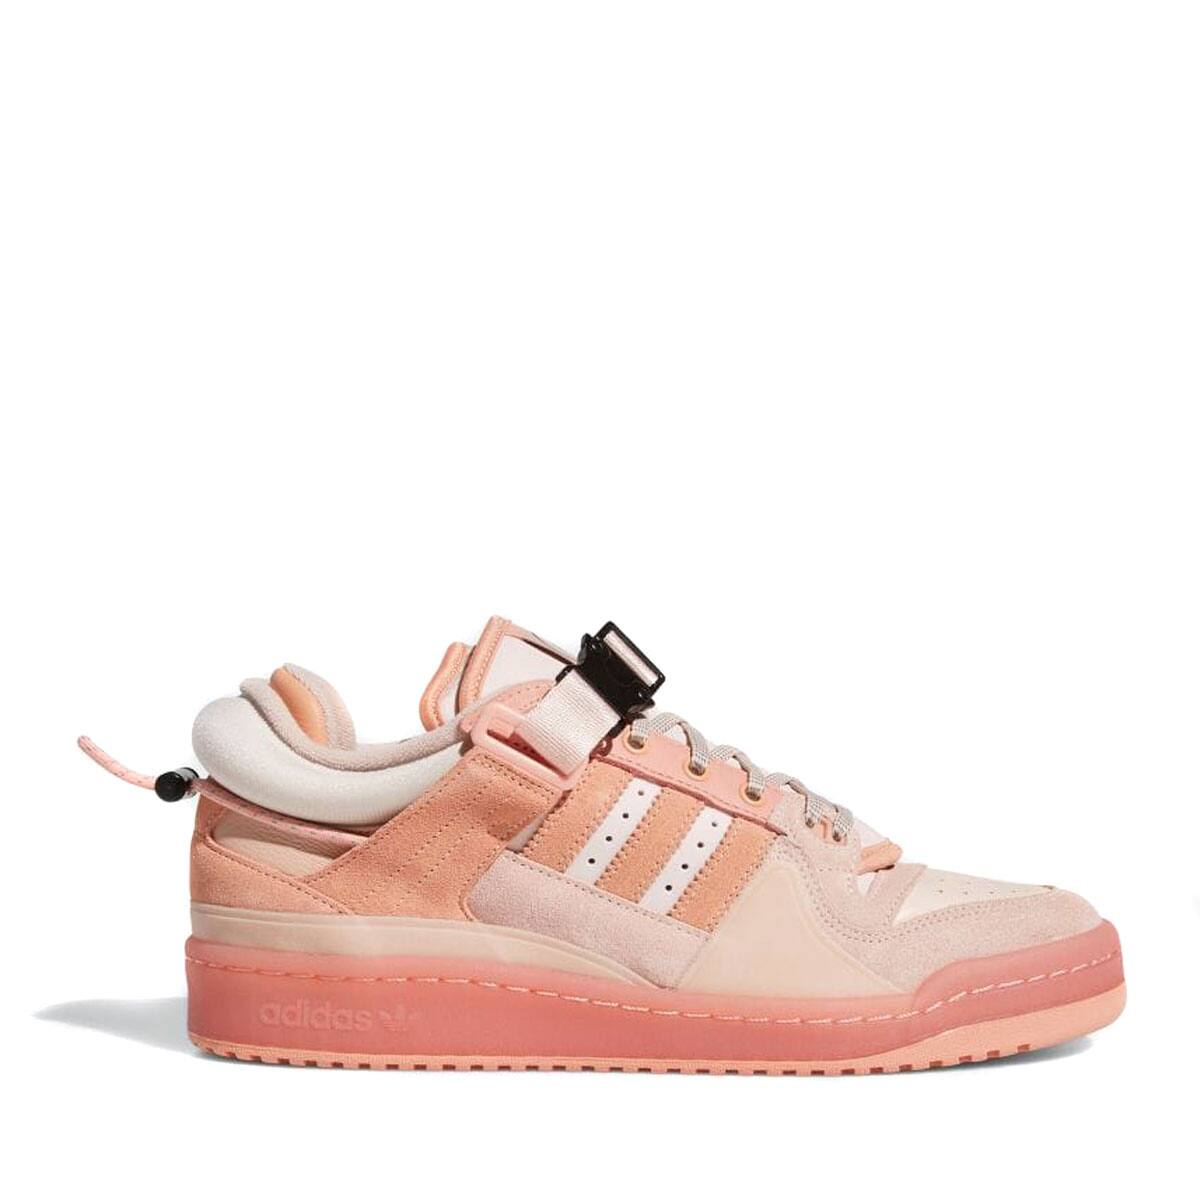 adidas BAD BUNNY FORUM THE FIRST CAFE SUPPLY COLOR/SUPPLY COLOR/SUPPLY COLOR 21SS-I